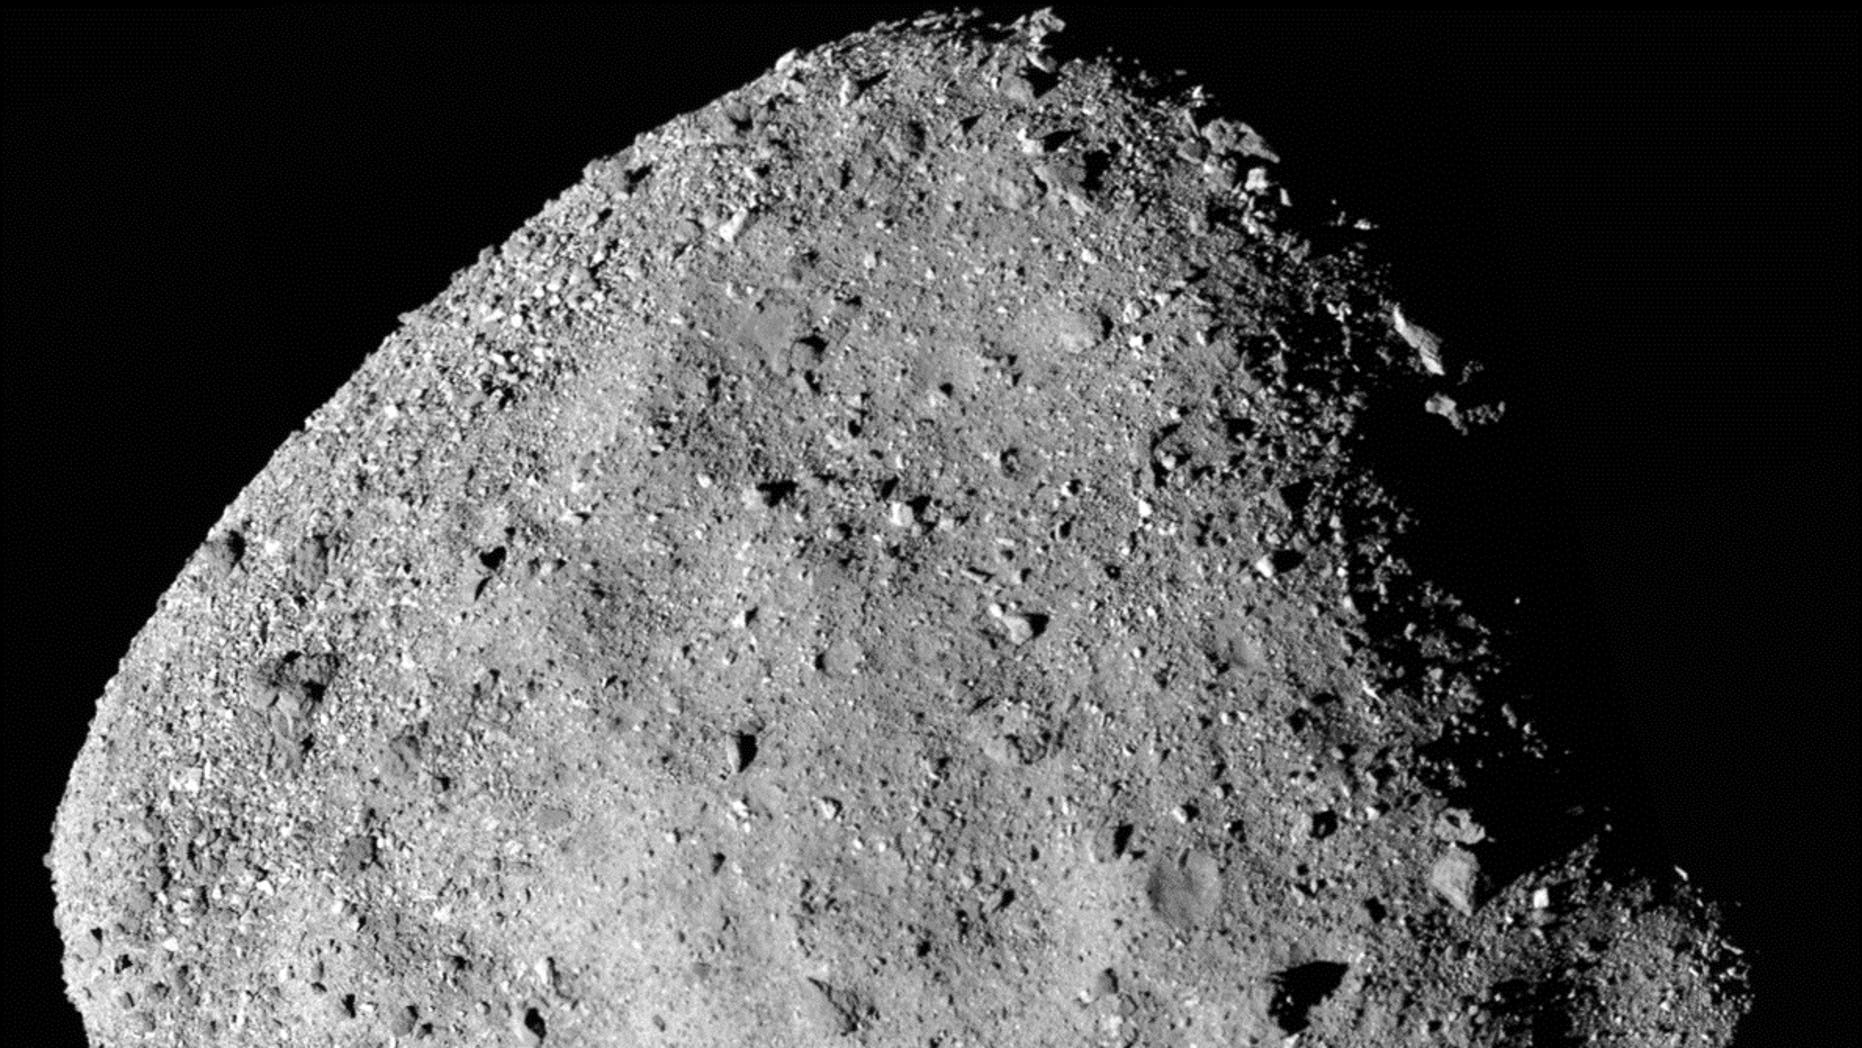 REx Spacecraft finds water on Asteroid Bennu